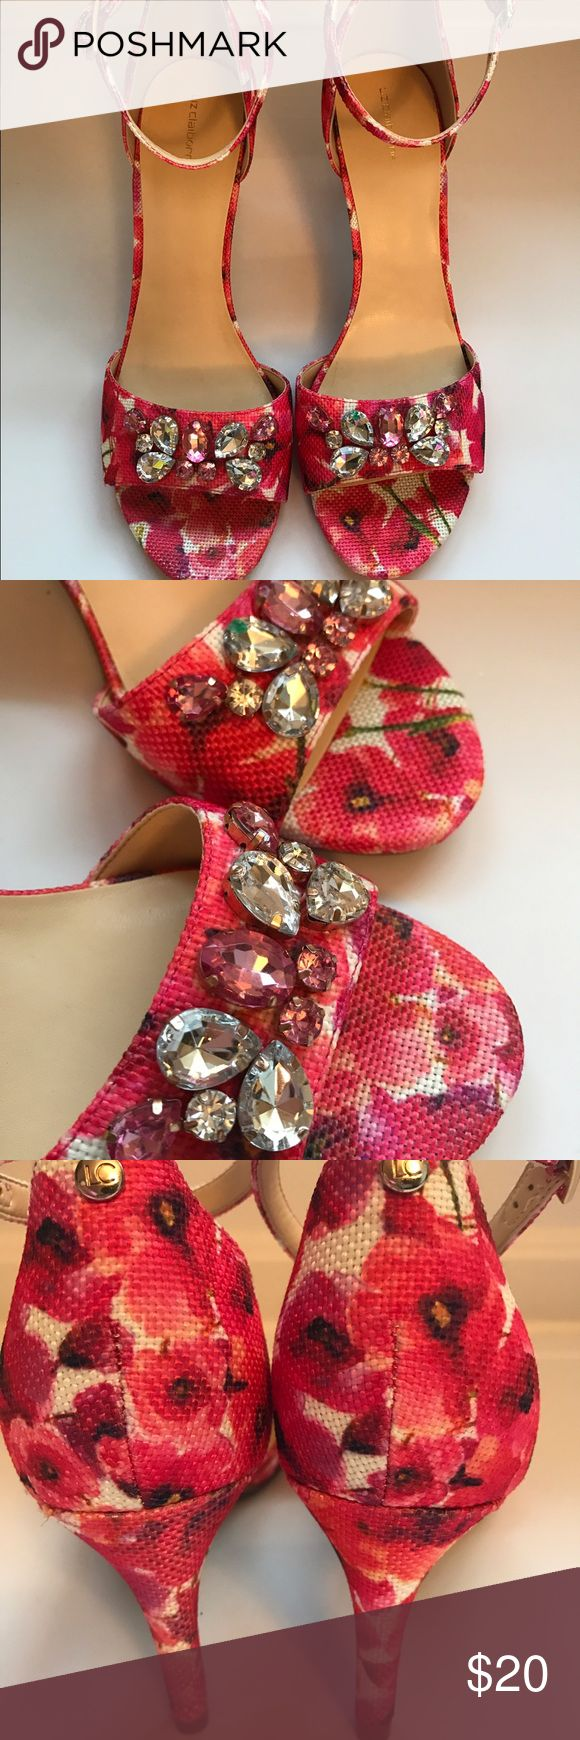 NIB New Floral strappy heels Easter pink Spring So fresh & pretty for Spring & Summer! New in box never worn pink floral pattern with ankle strap closure. Pink & silver jeweled accent   Open toe. Heel height 3.5 inches Liz Claiborne Shoes Heels